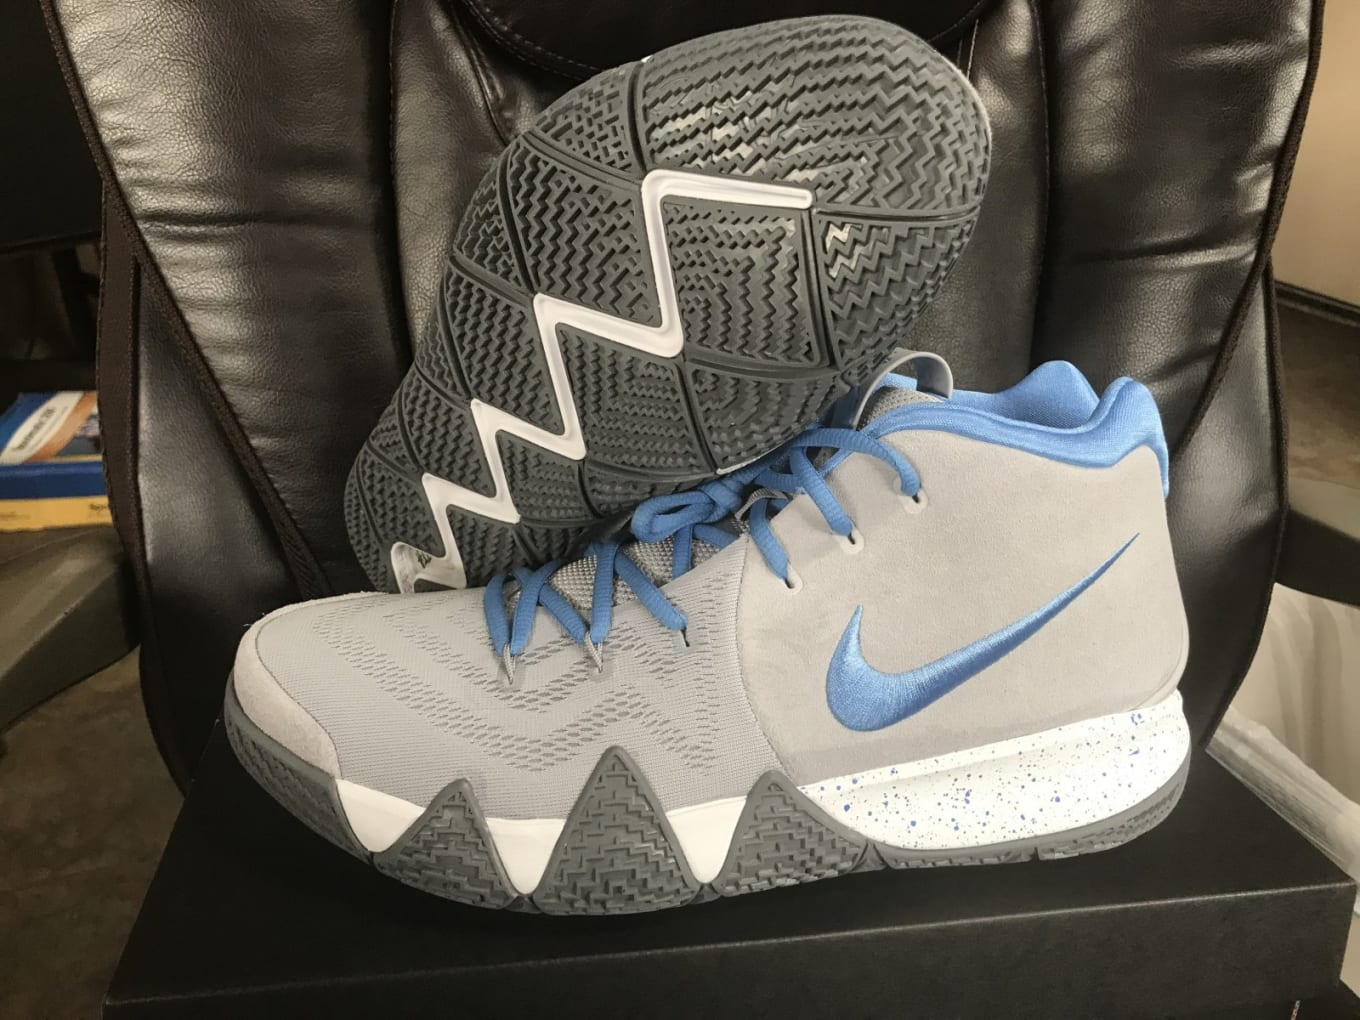 new arrival c4ab5 c9958 low price nikeid kyrie 4 designs sole collector a2734 9e26d